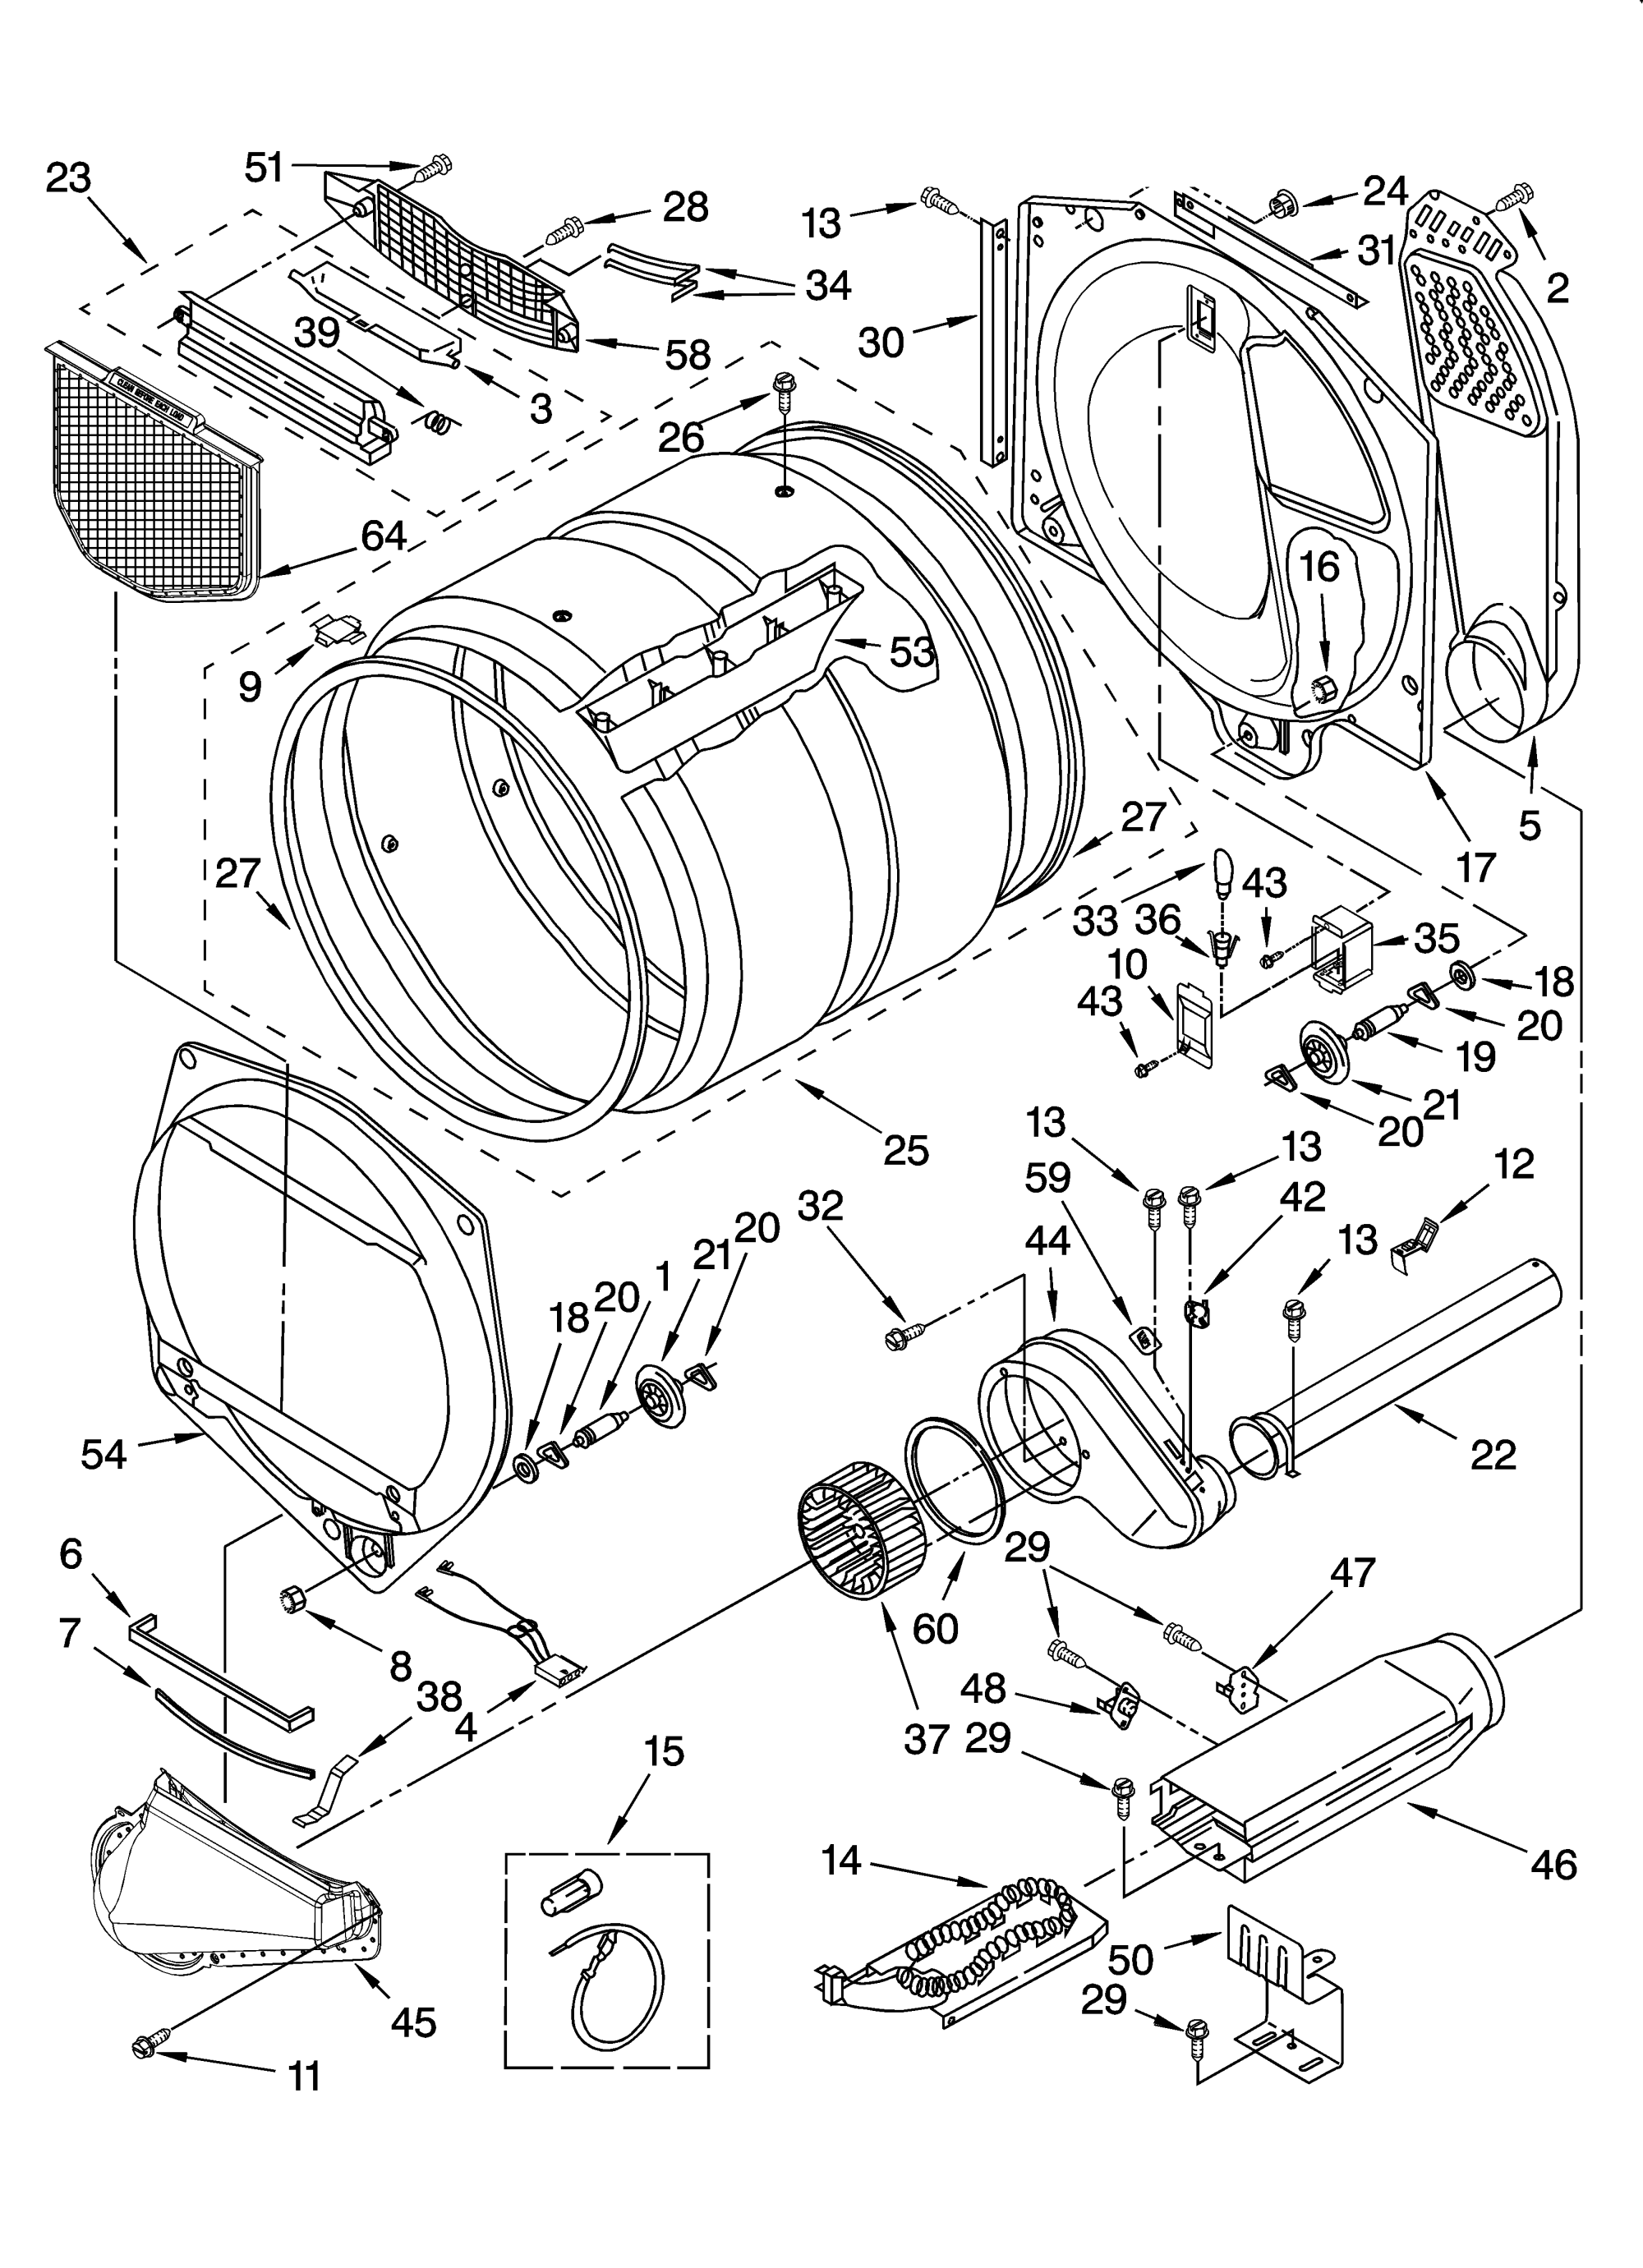 hight resolution of kenmore dryer wiring diagram 220